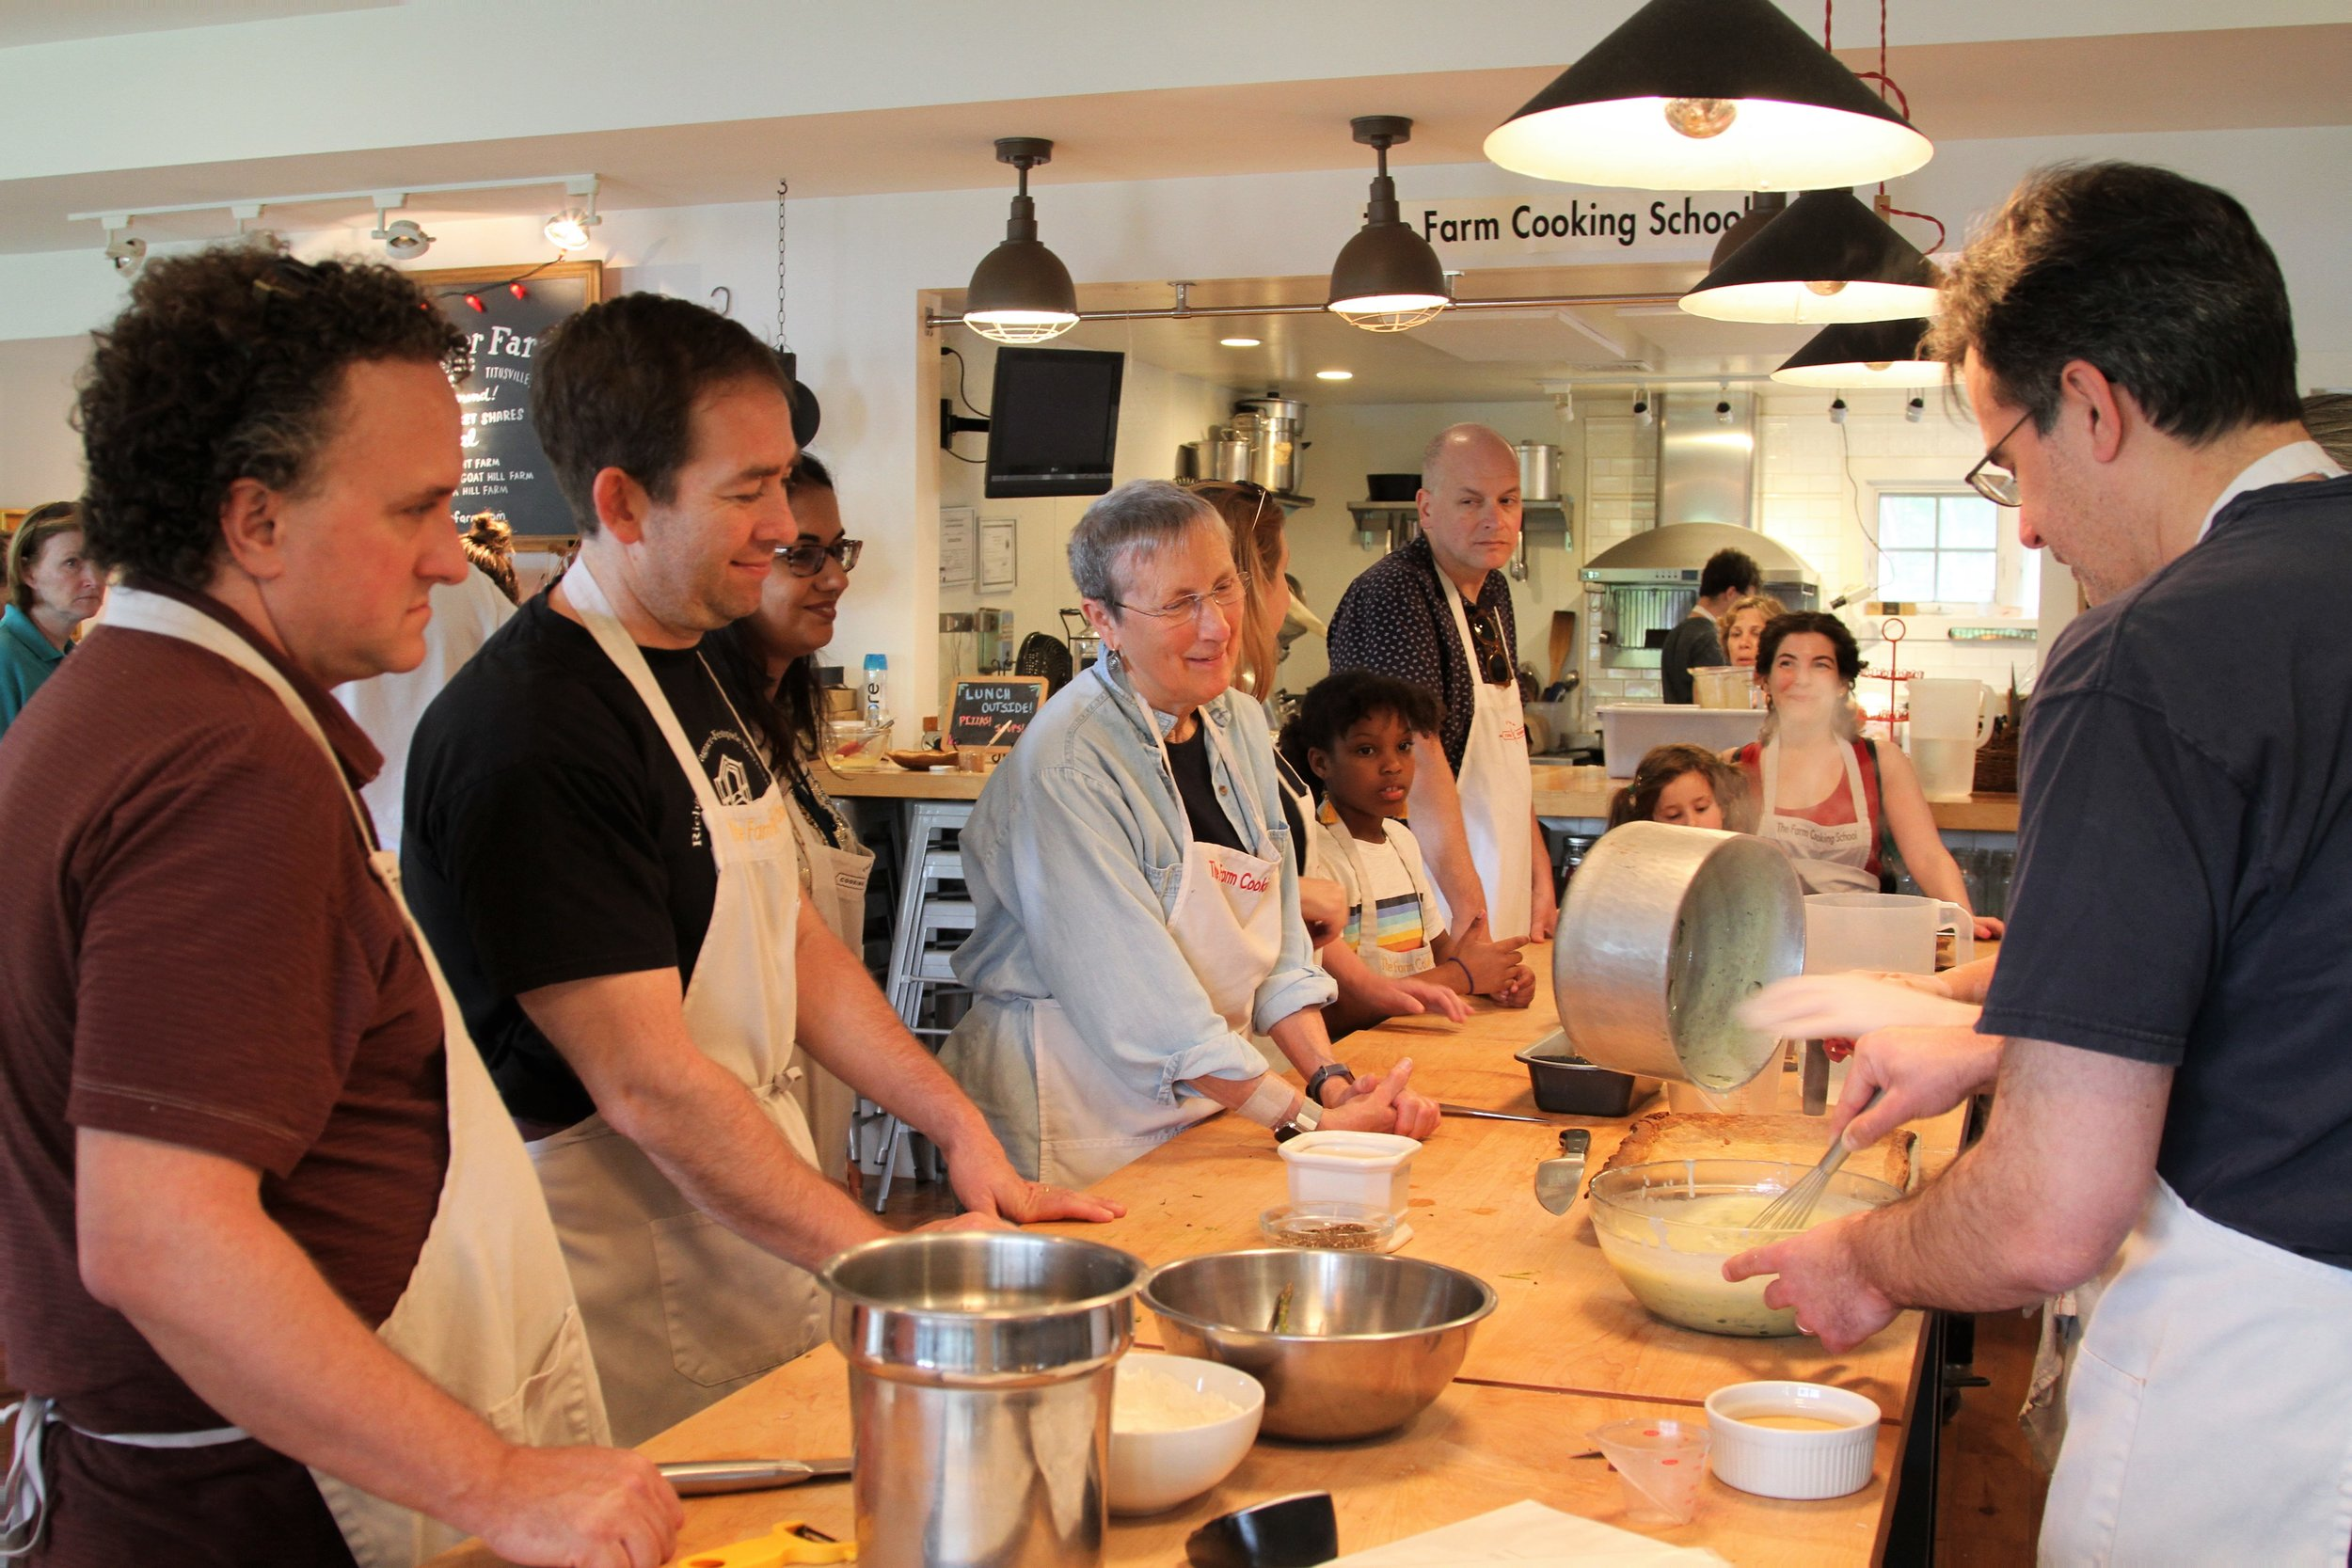 Our group cooking up a storm at The Farm Cooking School Ramps and Asparagus Workshop.